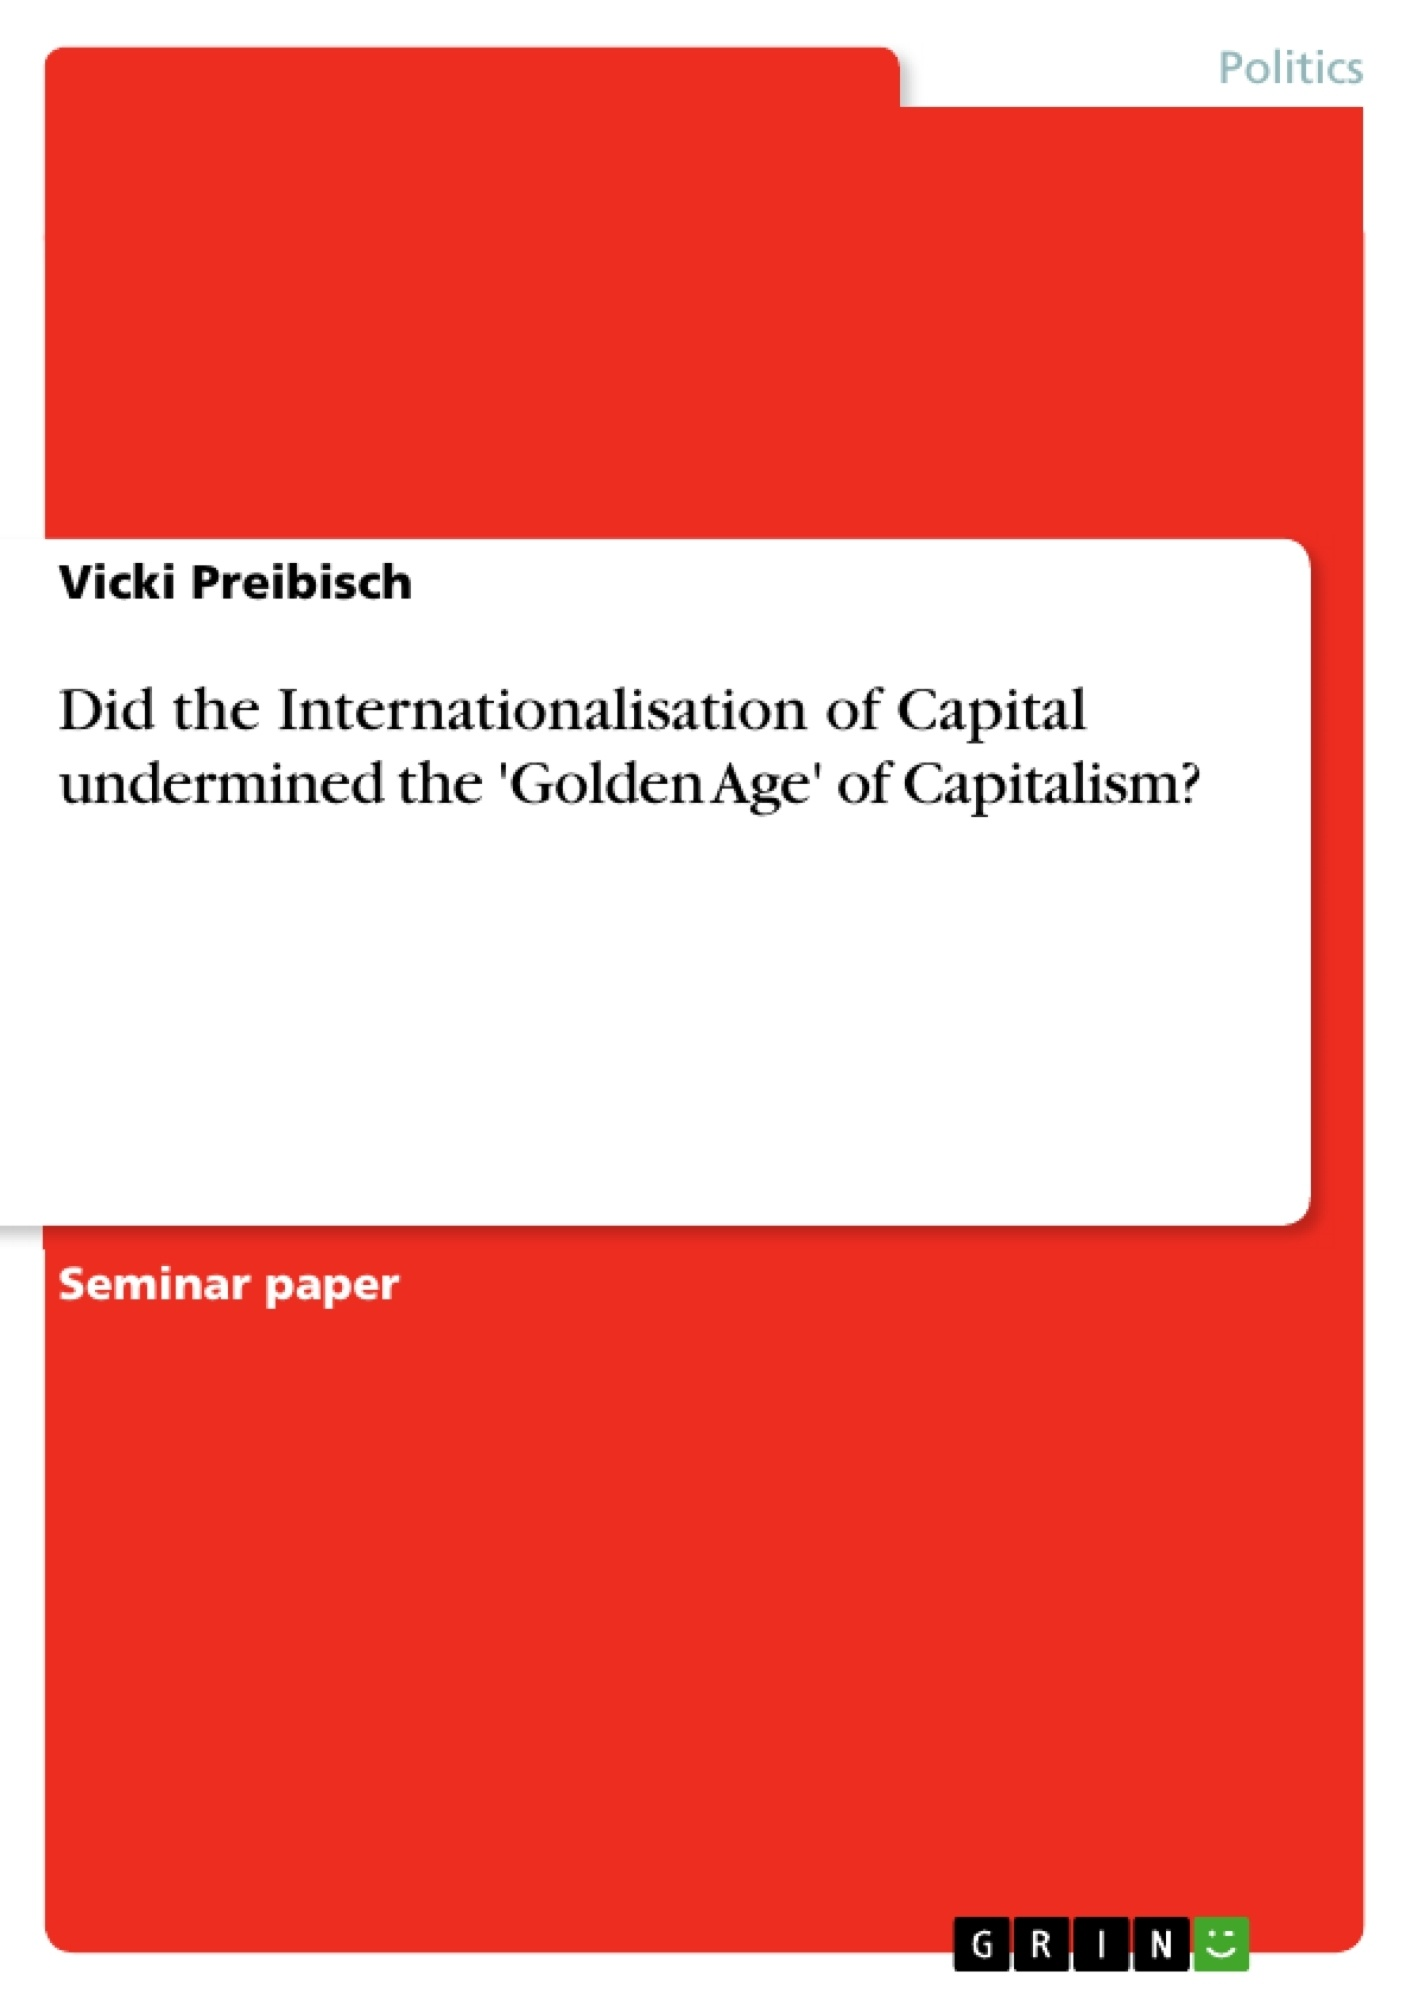 Title: Did the Internationalisation of Capital undermined the 'Golden Age' of Capitalism?